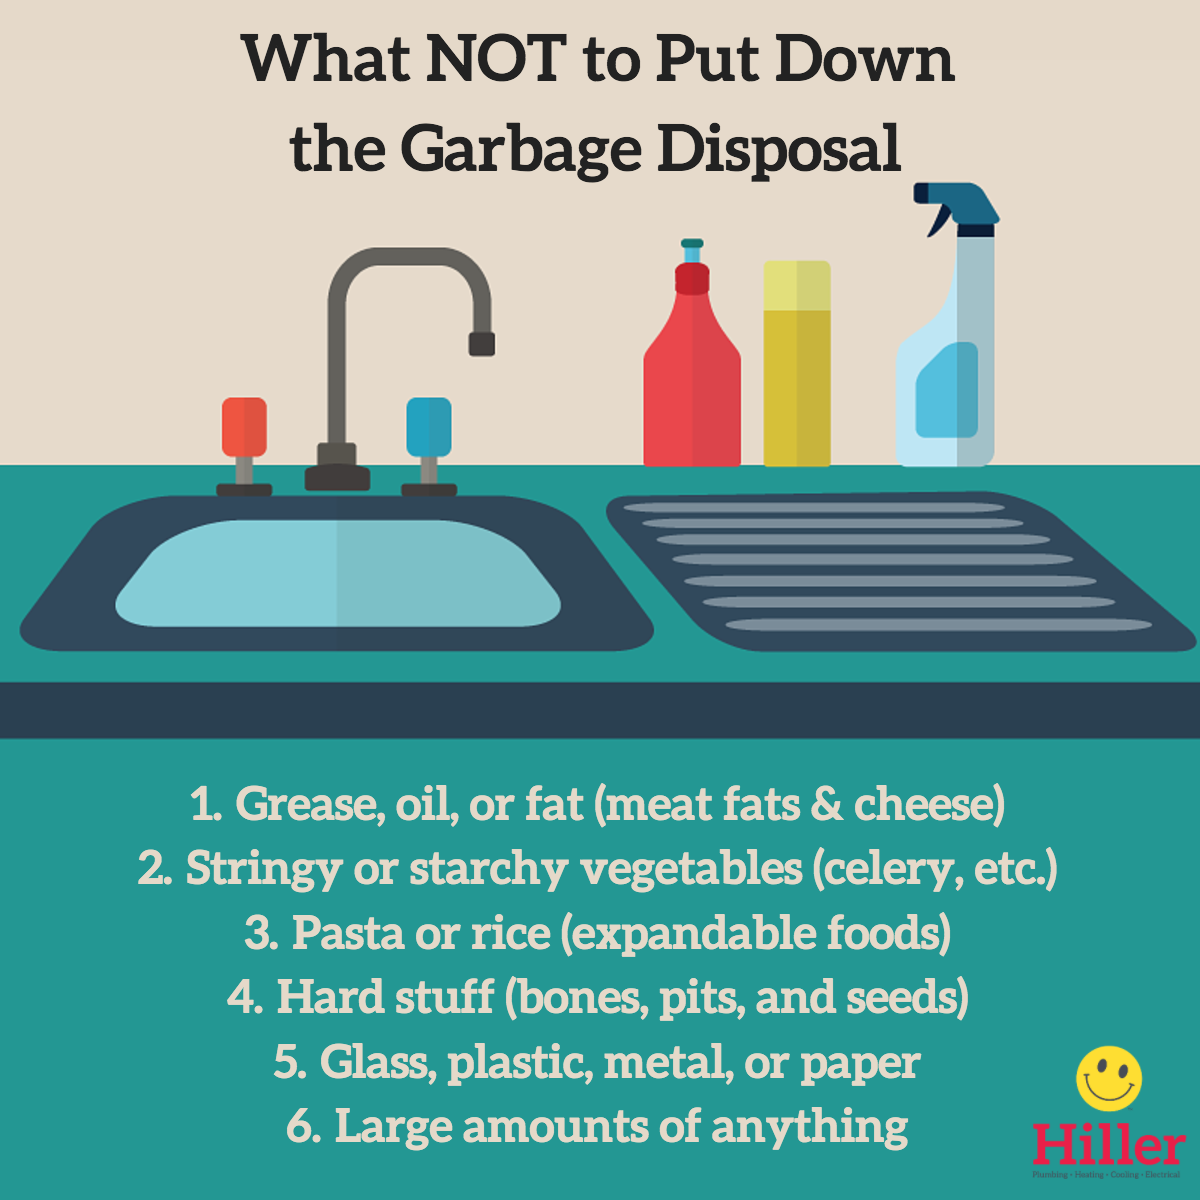 list of things that should not go down garbage disposal